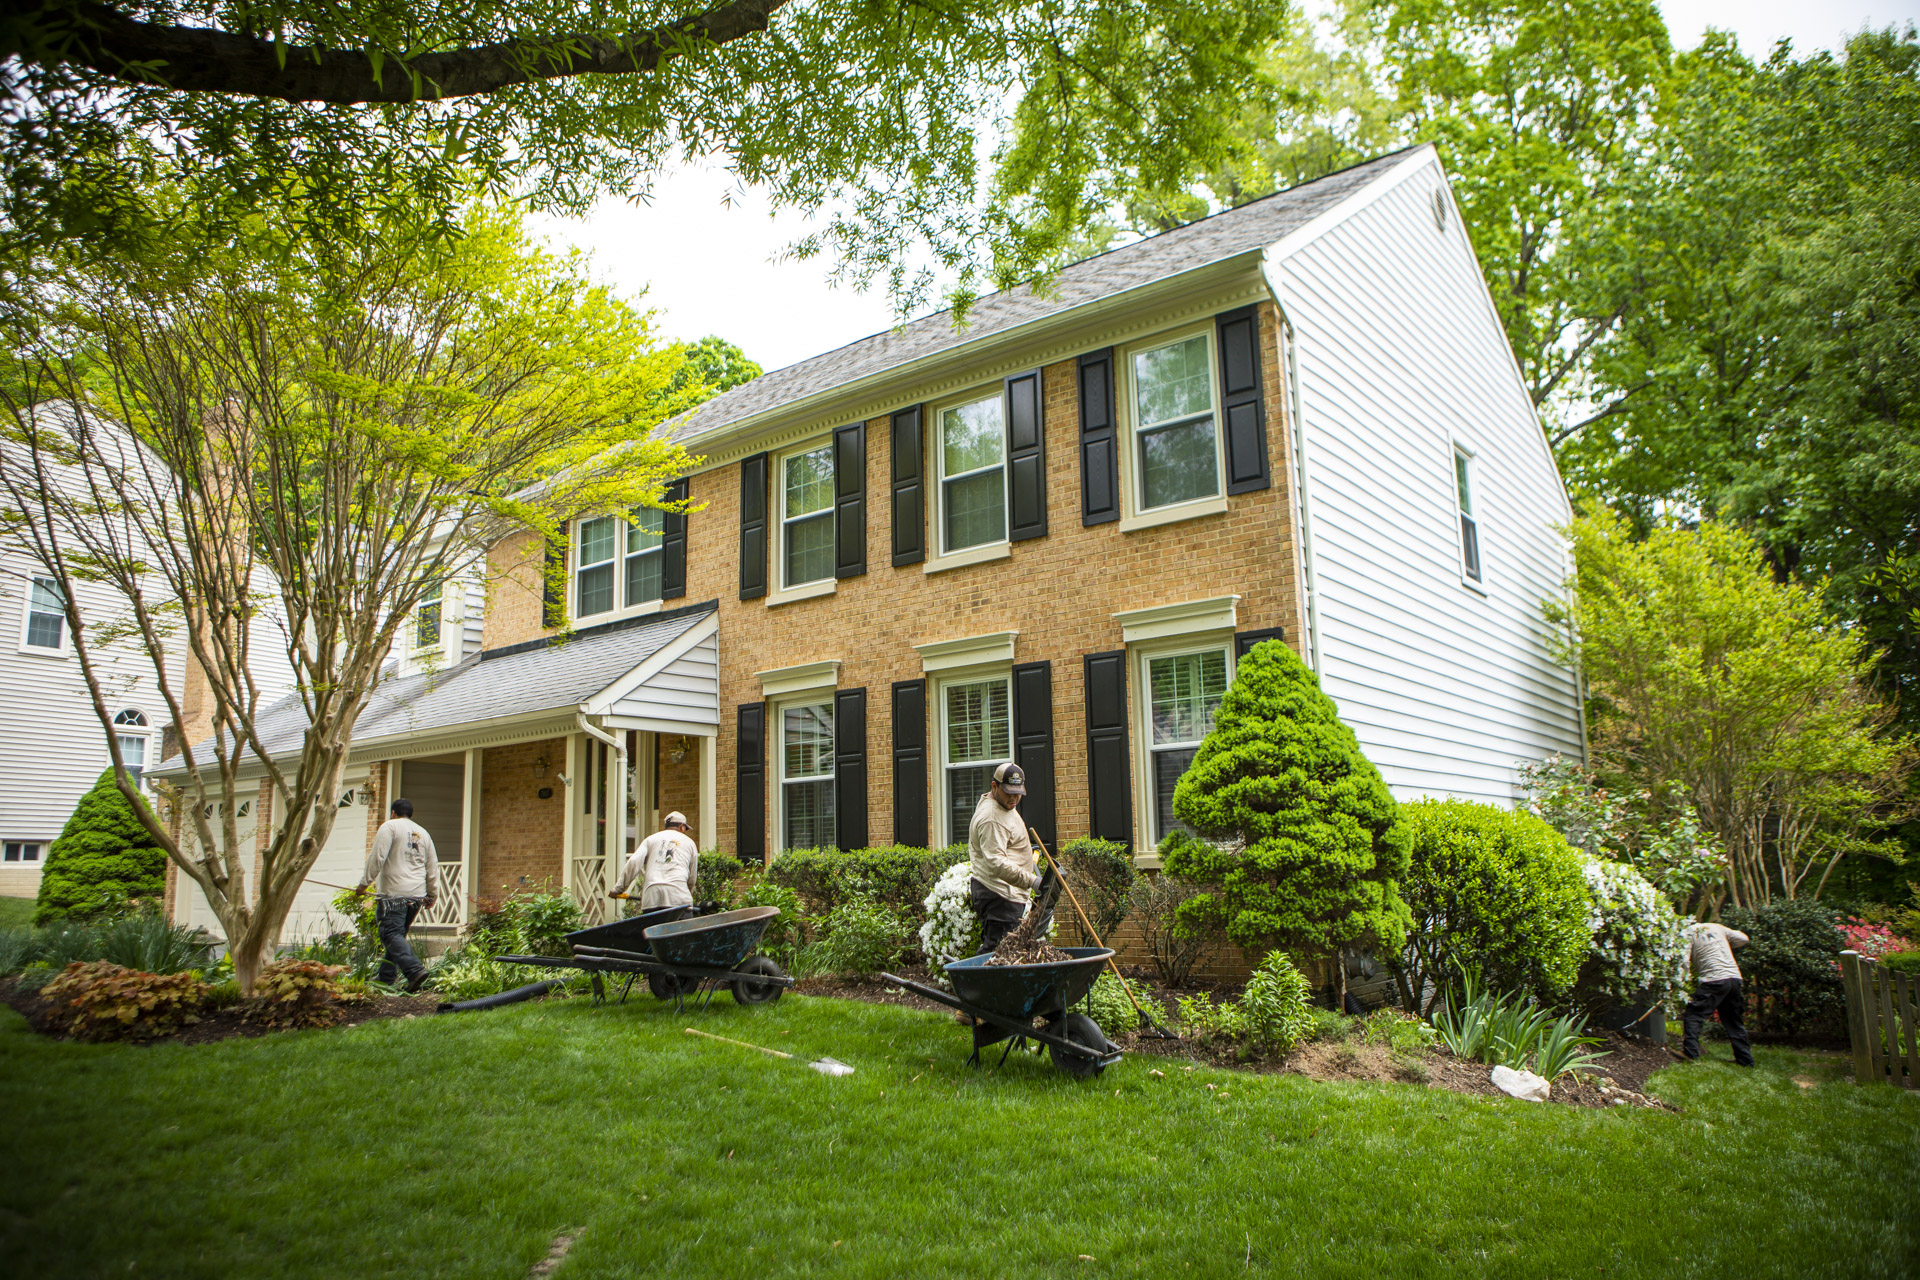 landscape maintenance technicians caring for lawn and landscape